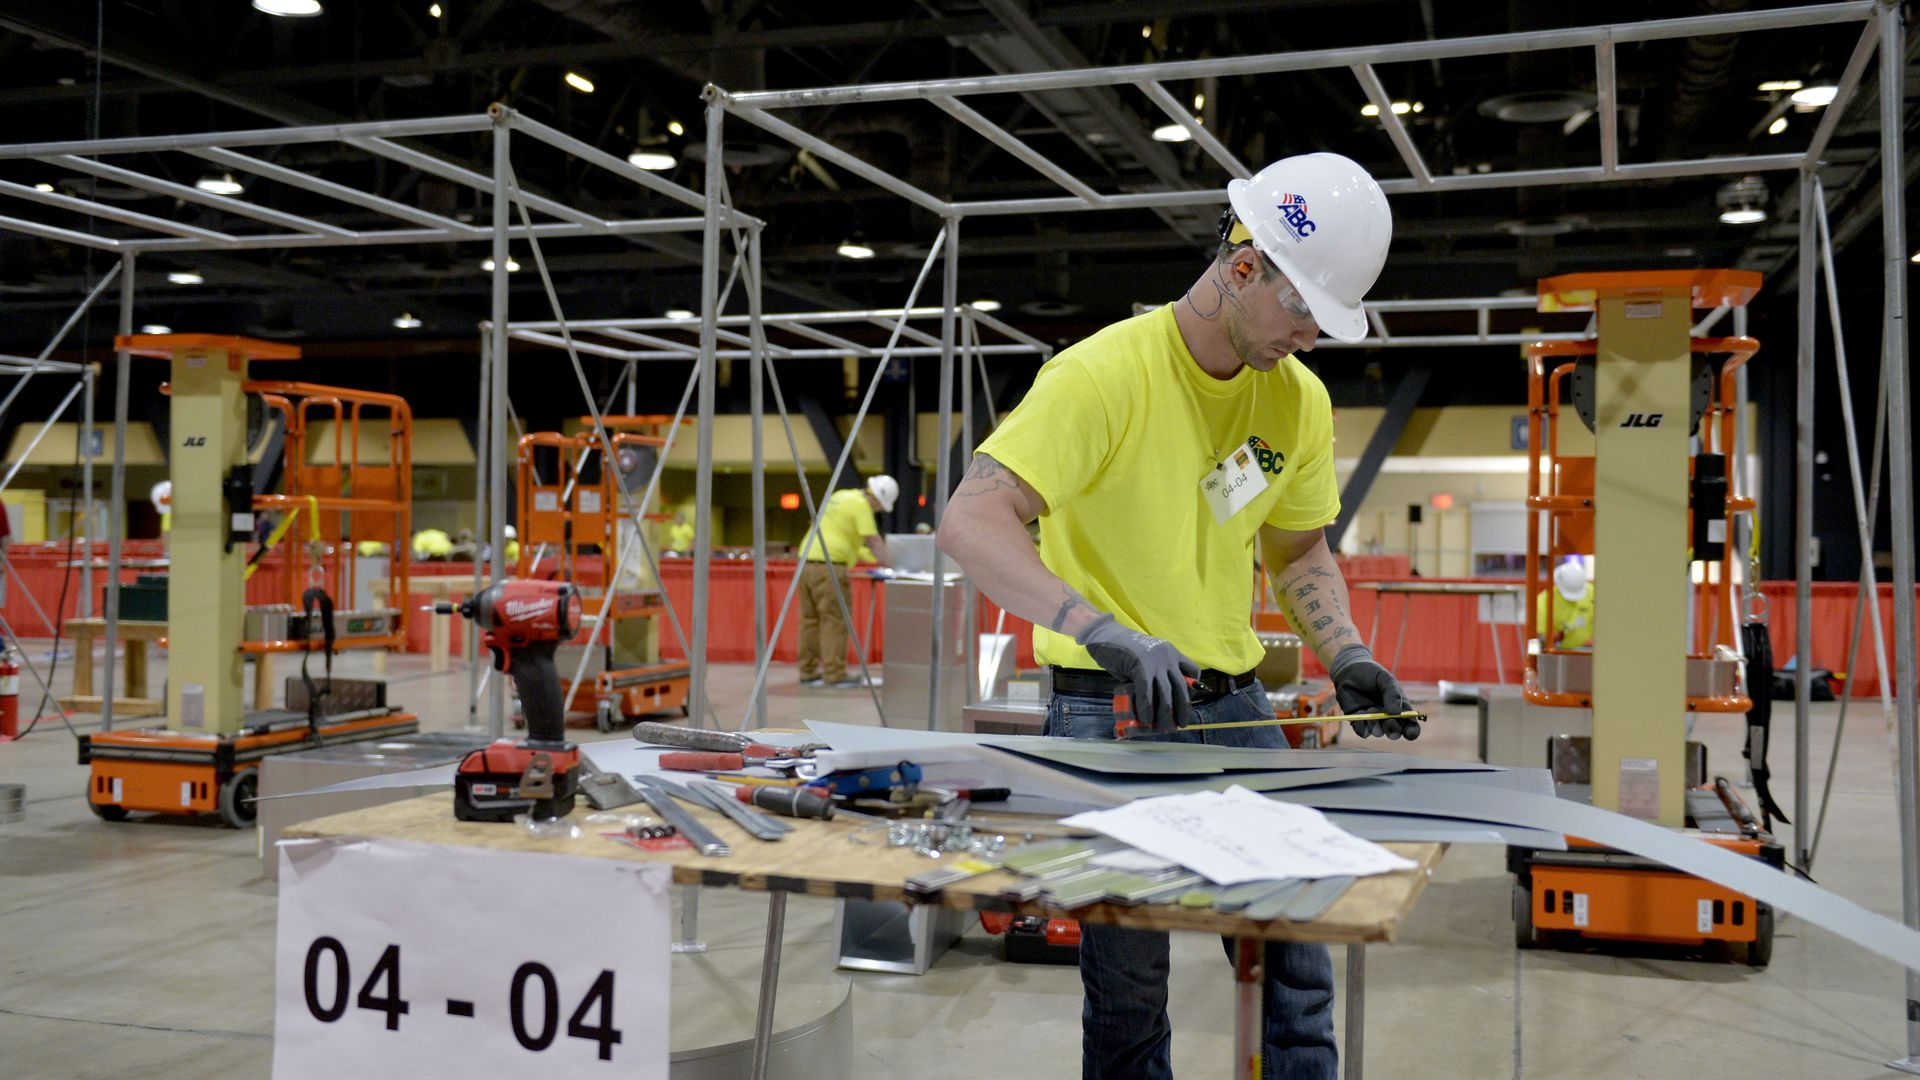 In this image, a man in a bright T-shirt and a white hard hat works over a table in a warehouse.